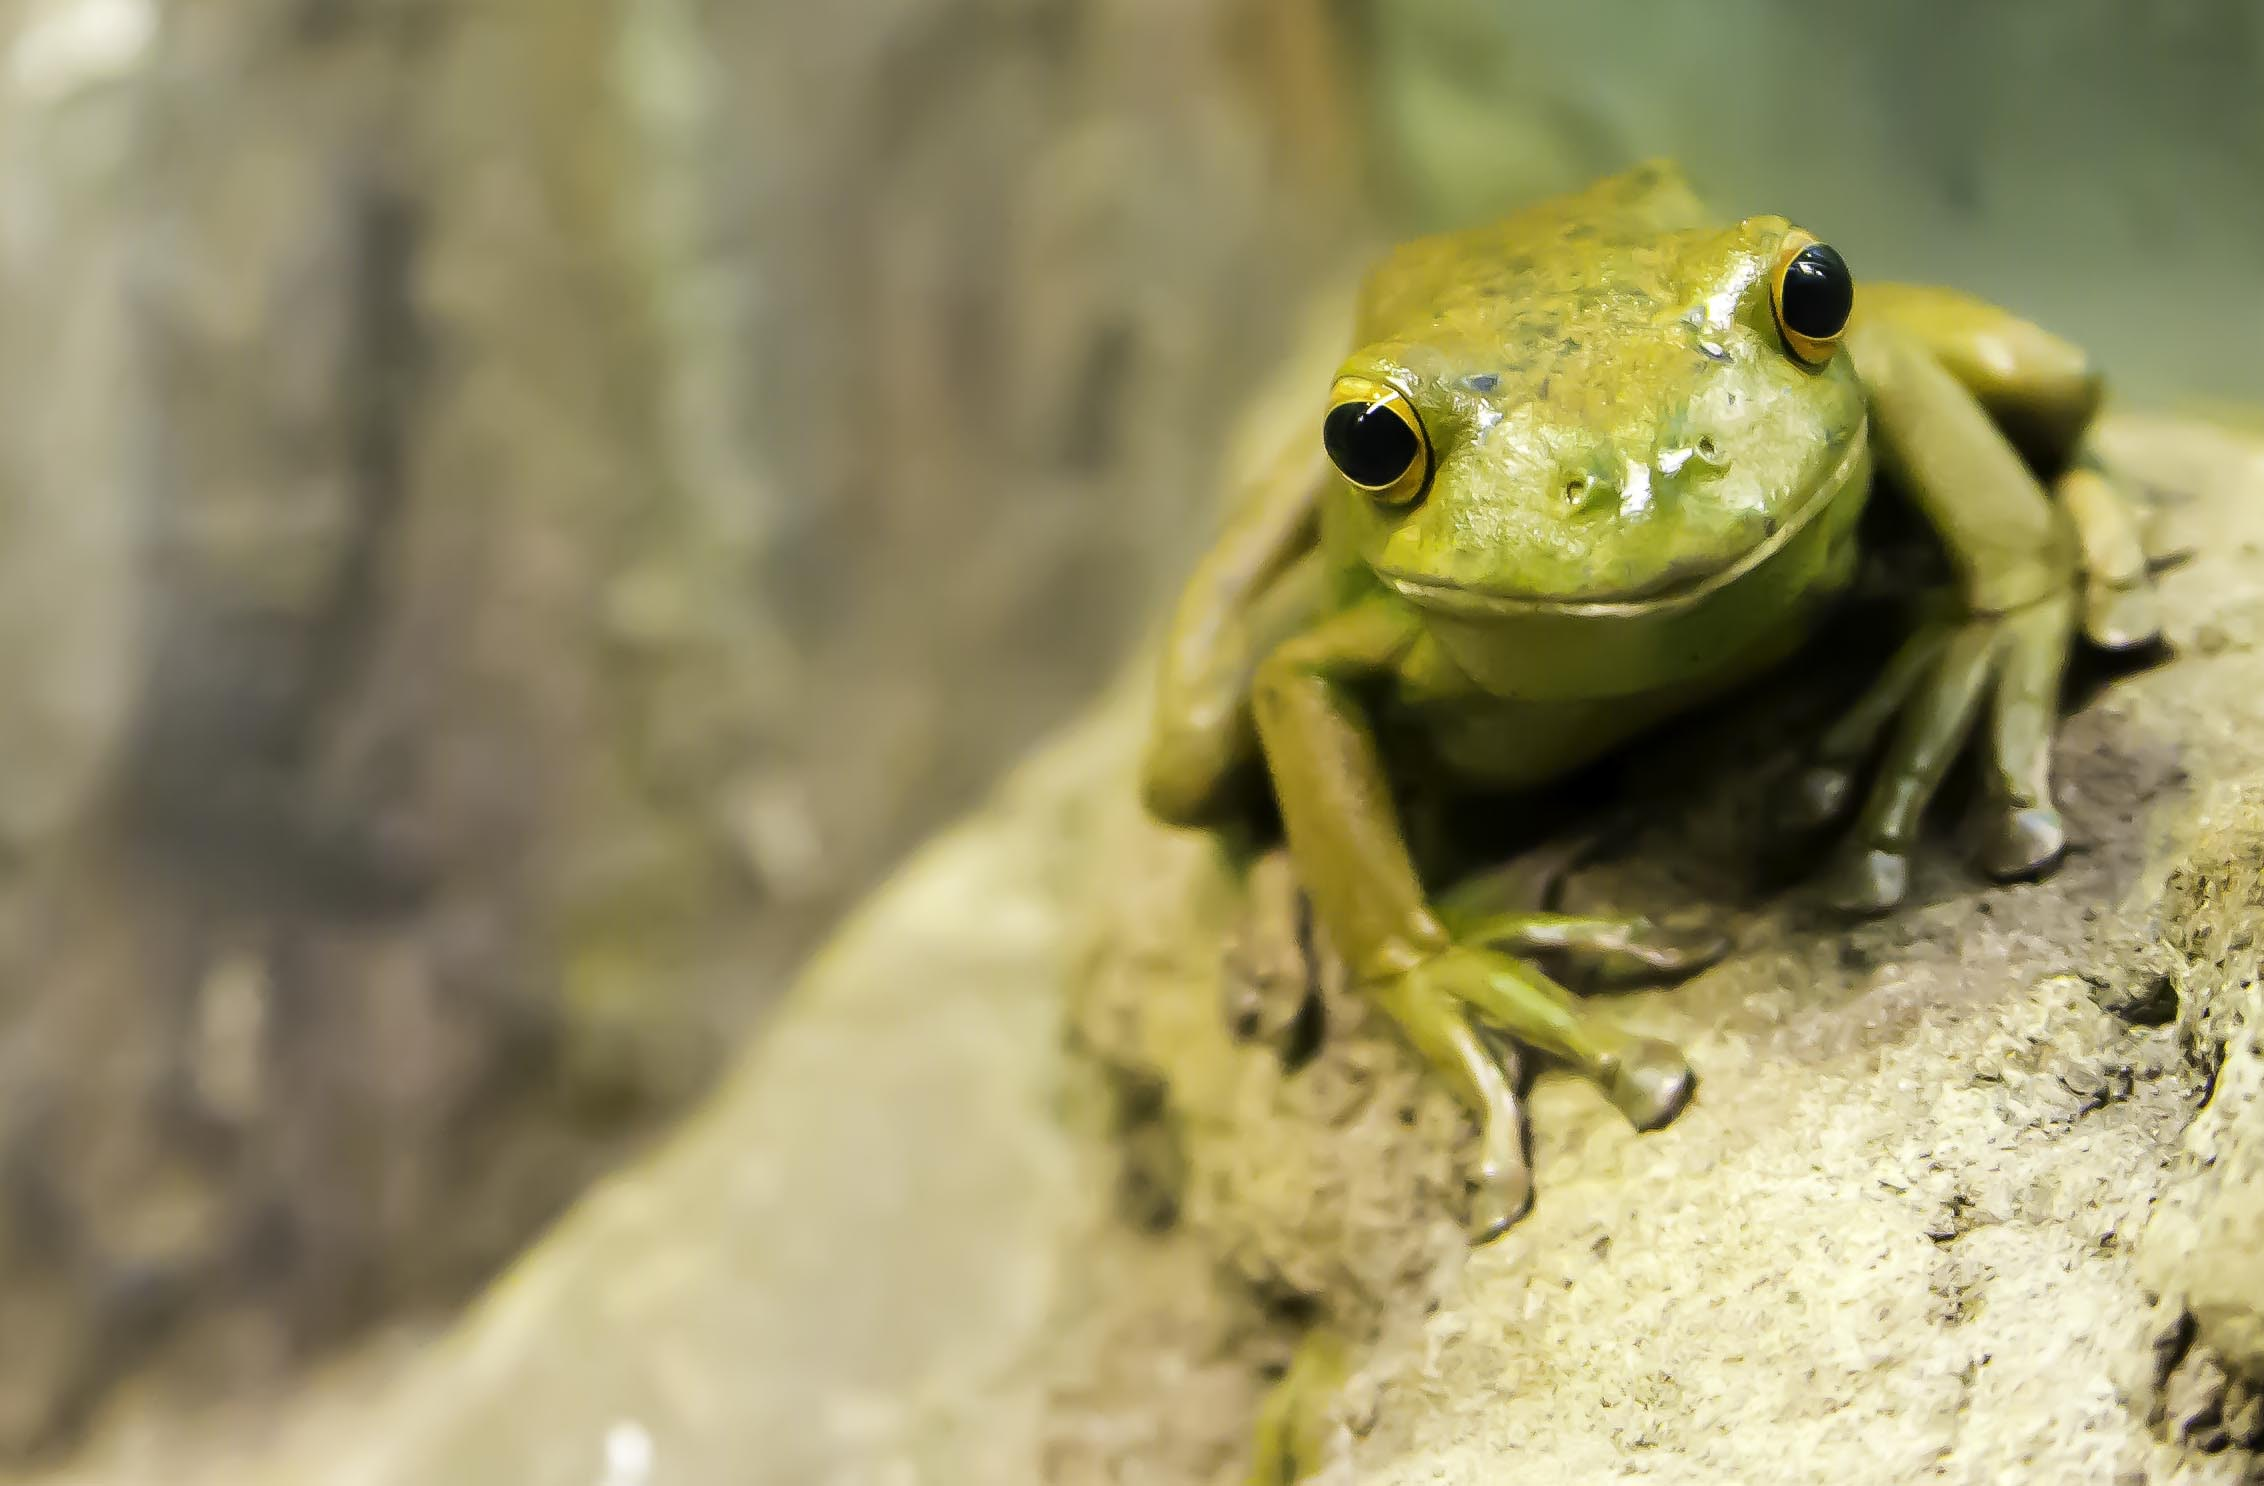 A light green frog sitting on a mossy rock and calmly looking at the camera